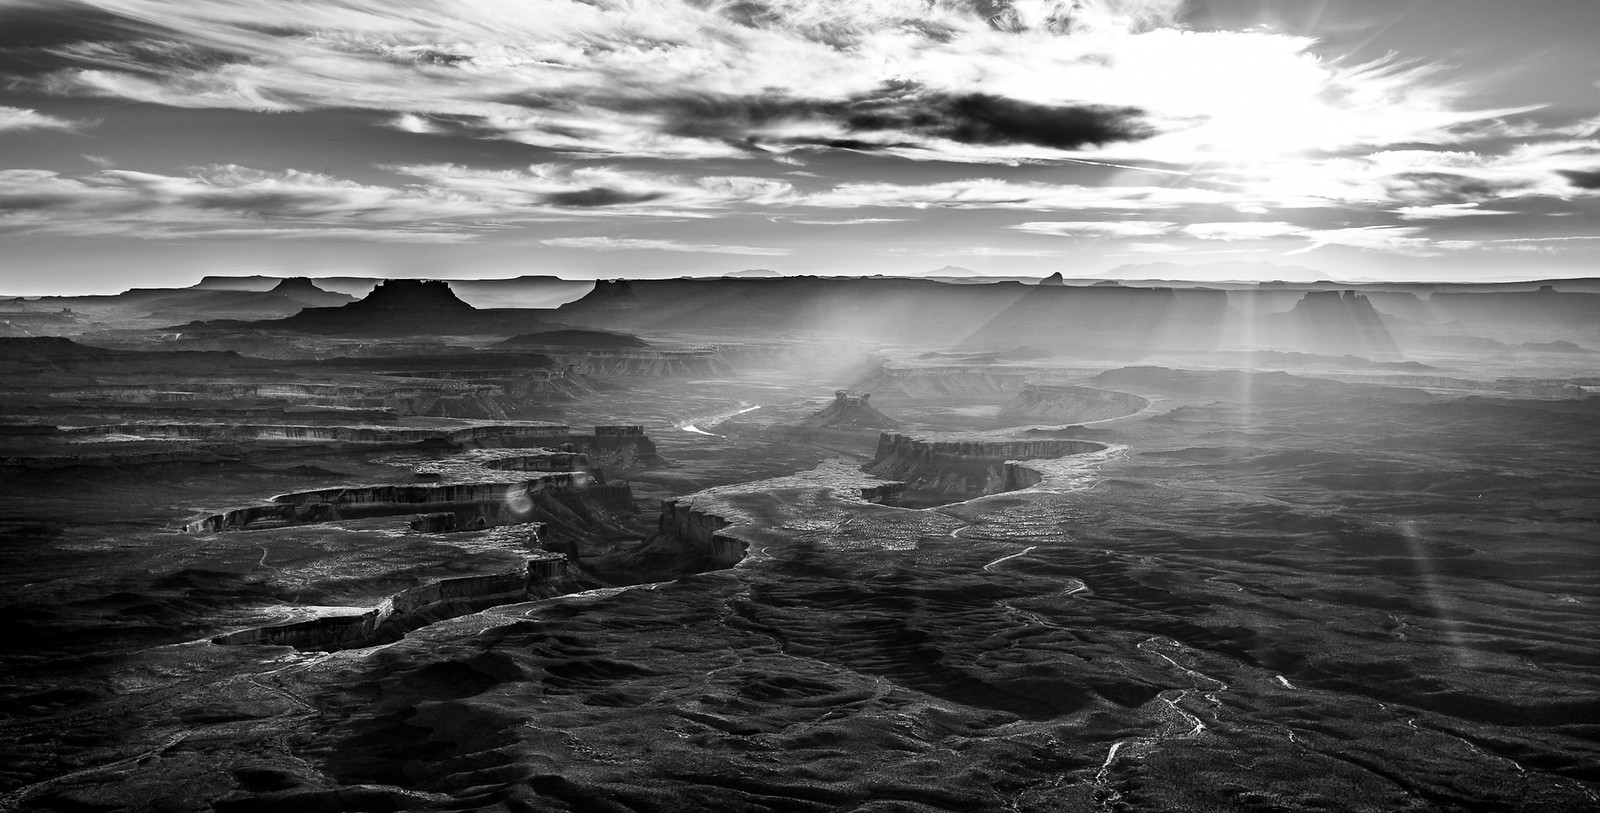 Canyonlands National Park scenic